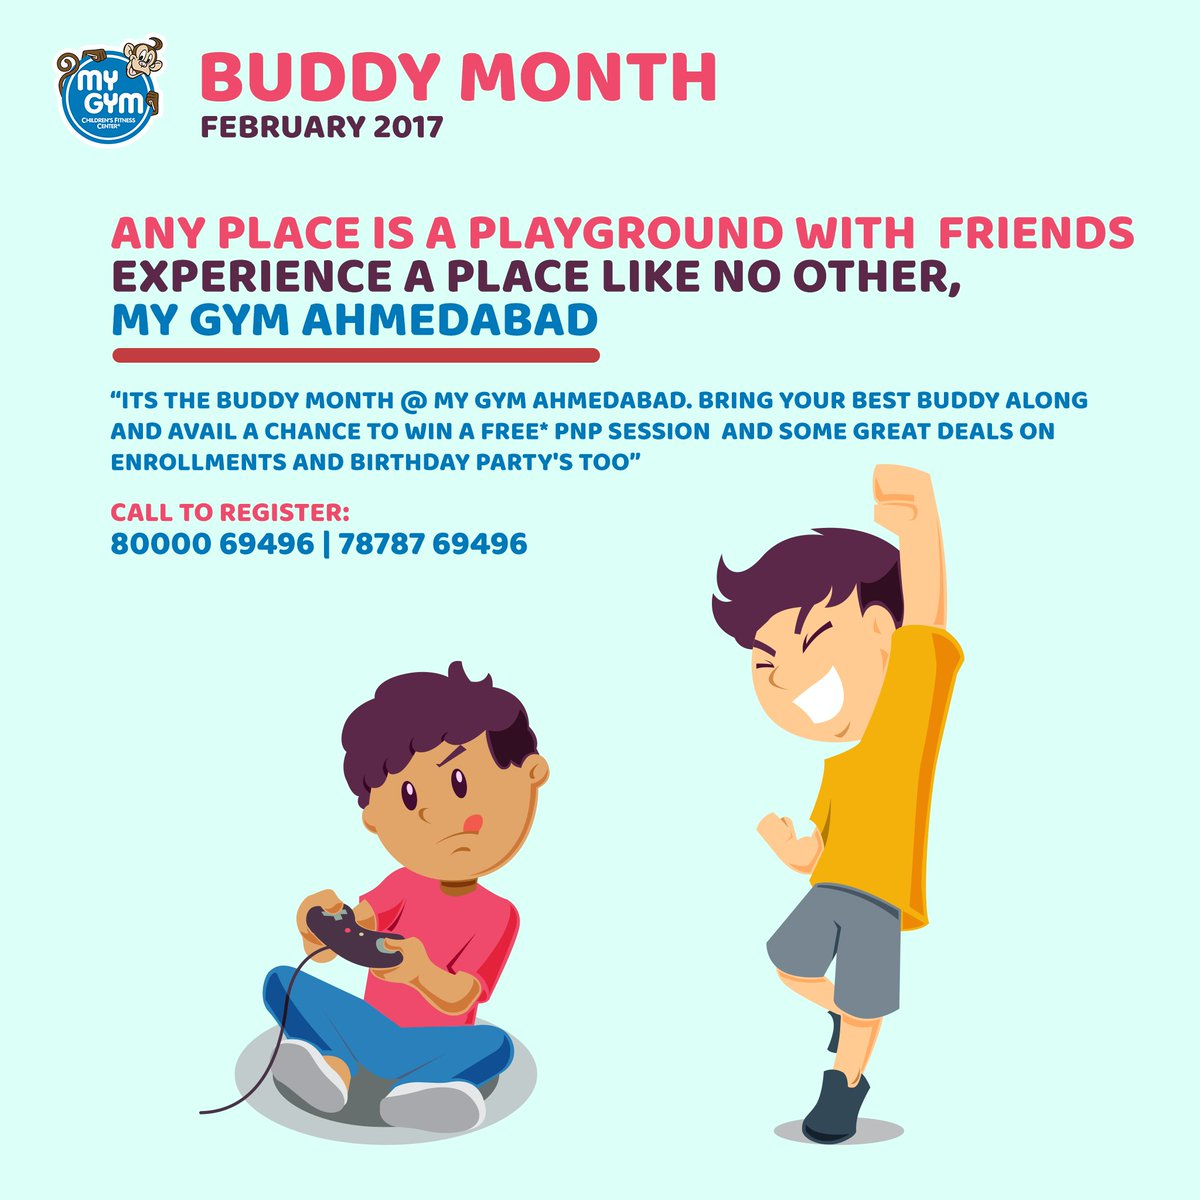 My Gym Ahmedabad On Twitter Buddy Month Starts At MyGym